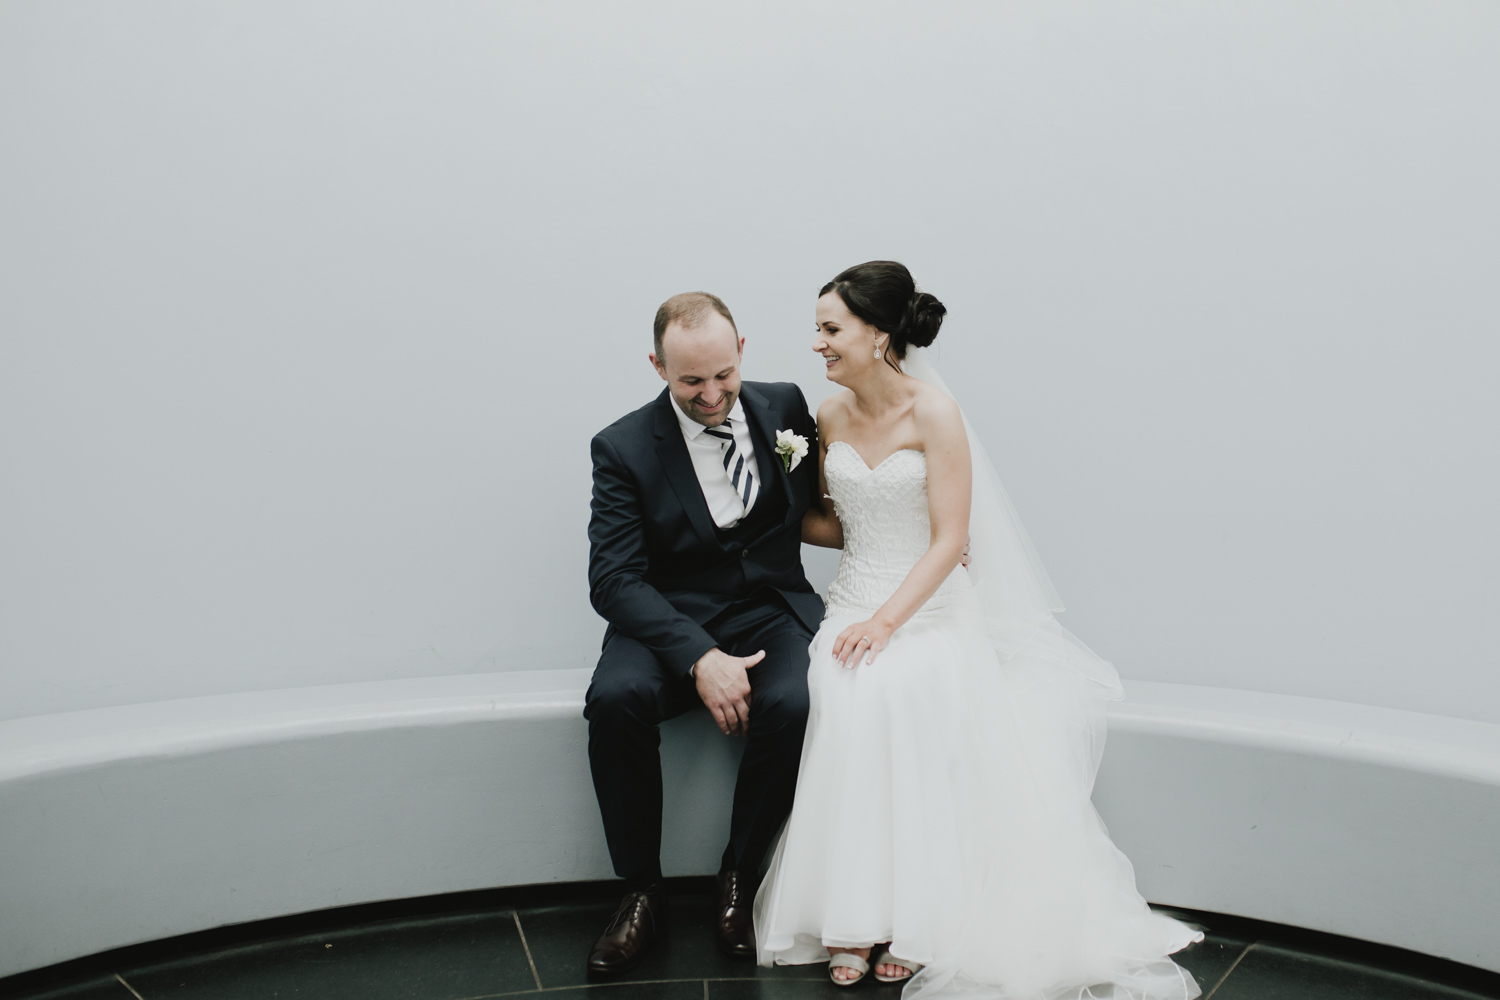 Skyspace NGA Wedding Portraits Canberra Photography by Jenny Wu Straight No Chaser